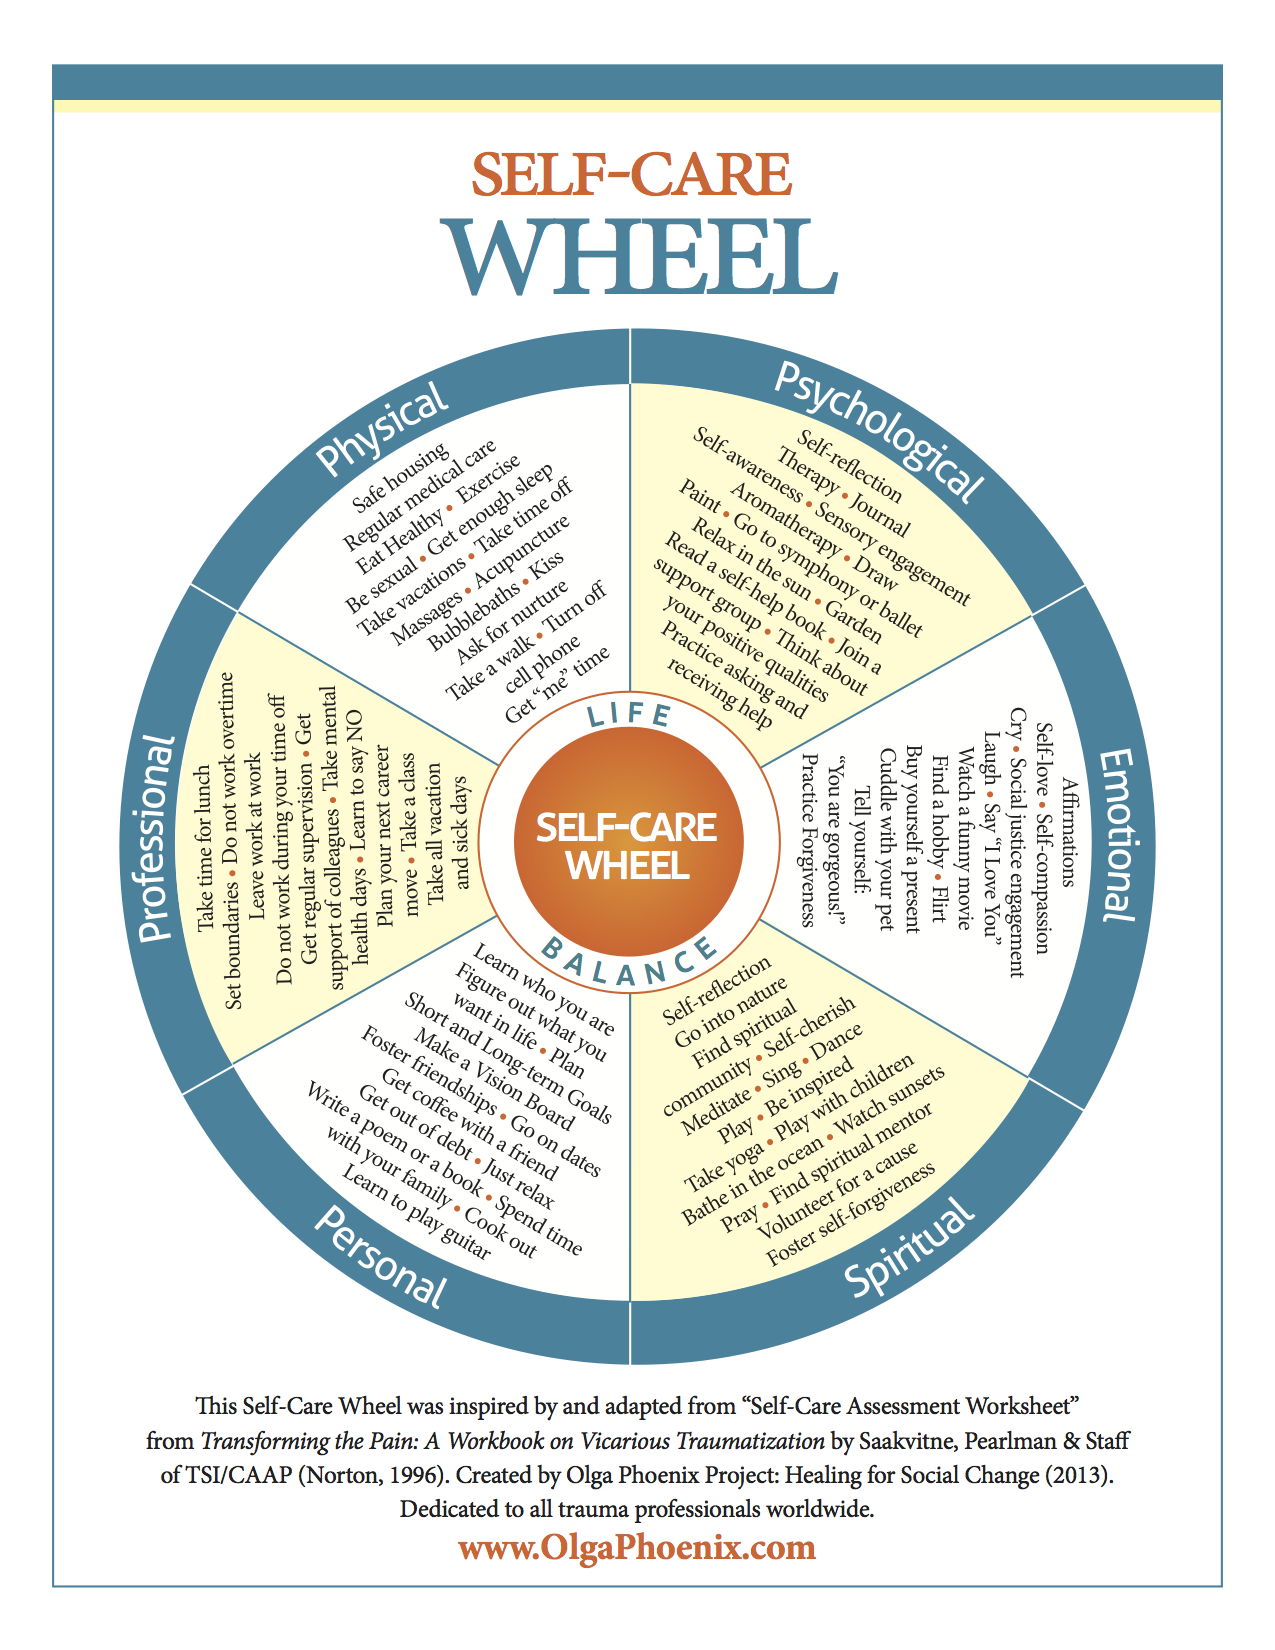 Self-care wheel image